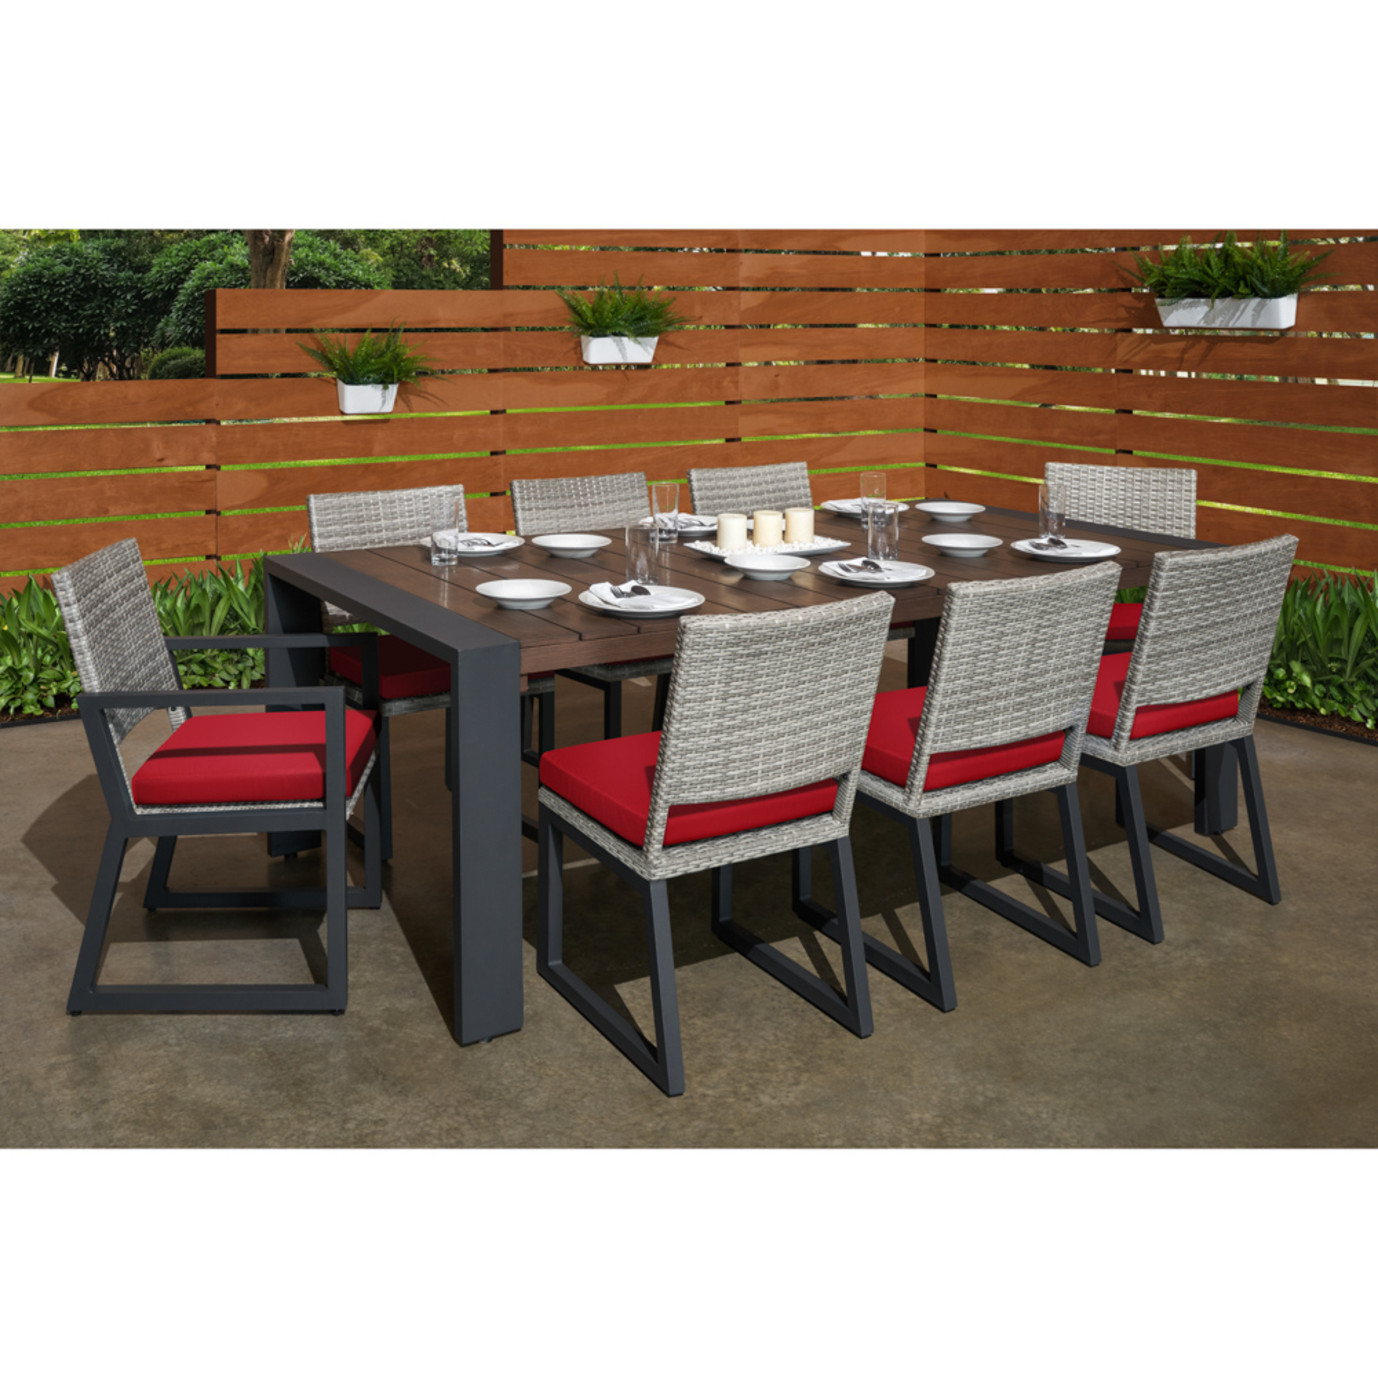 Milo™ Gray 9 Piece Dining Set - Sunset Red